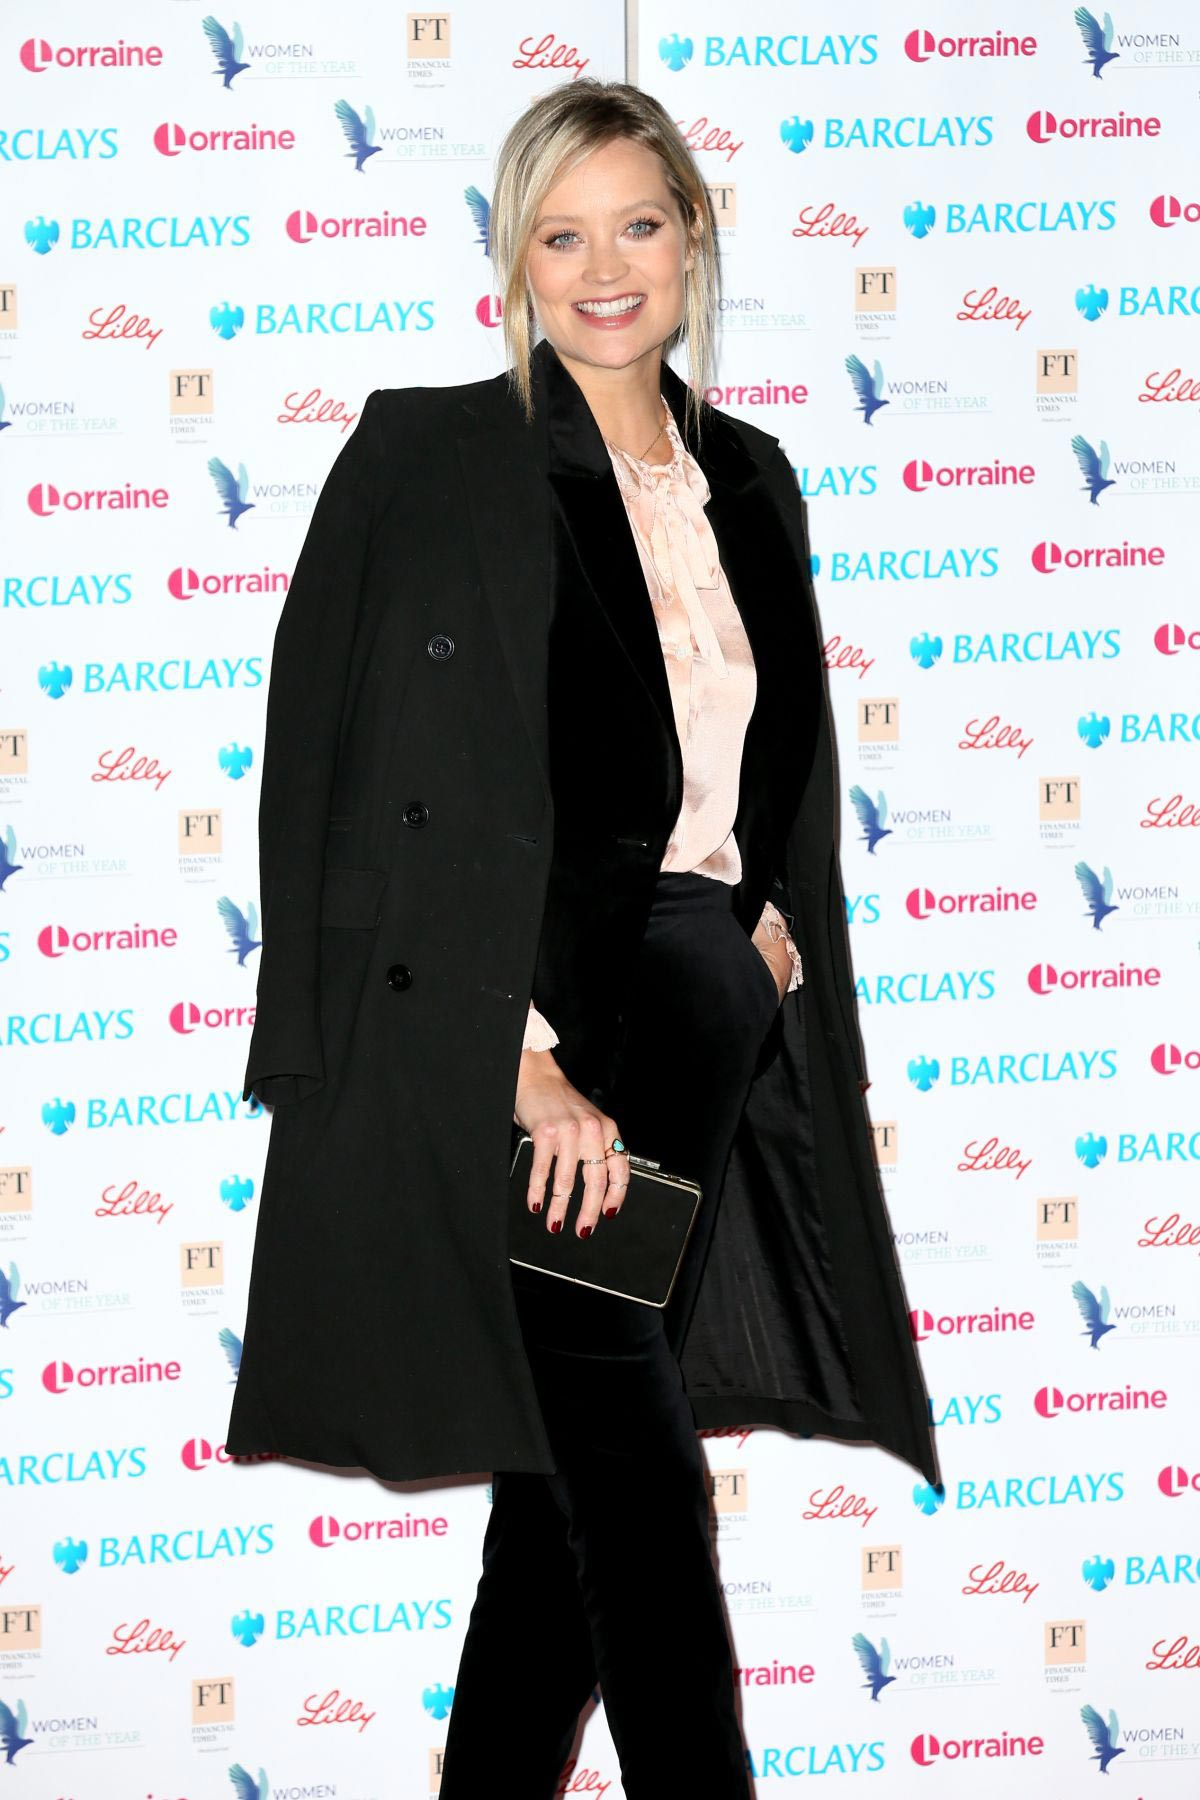 Laura Whitmore at Women of the Year Awards 2018 in London 2018/10/15 1